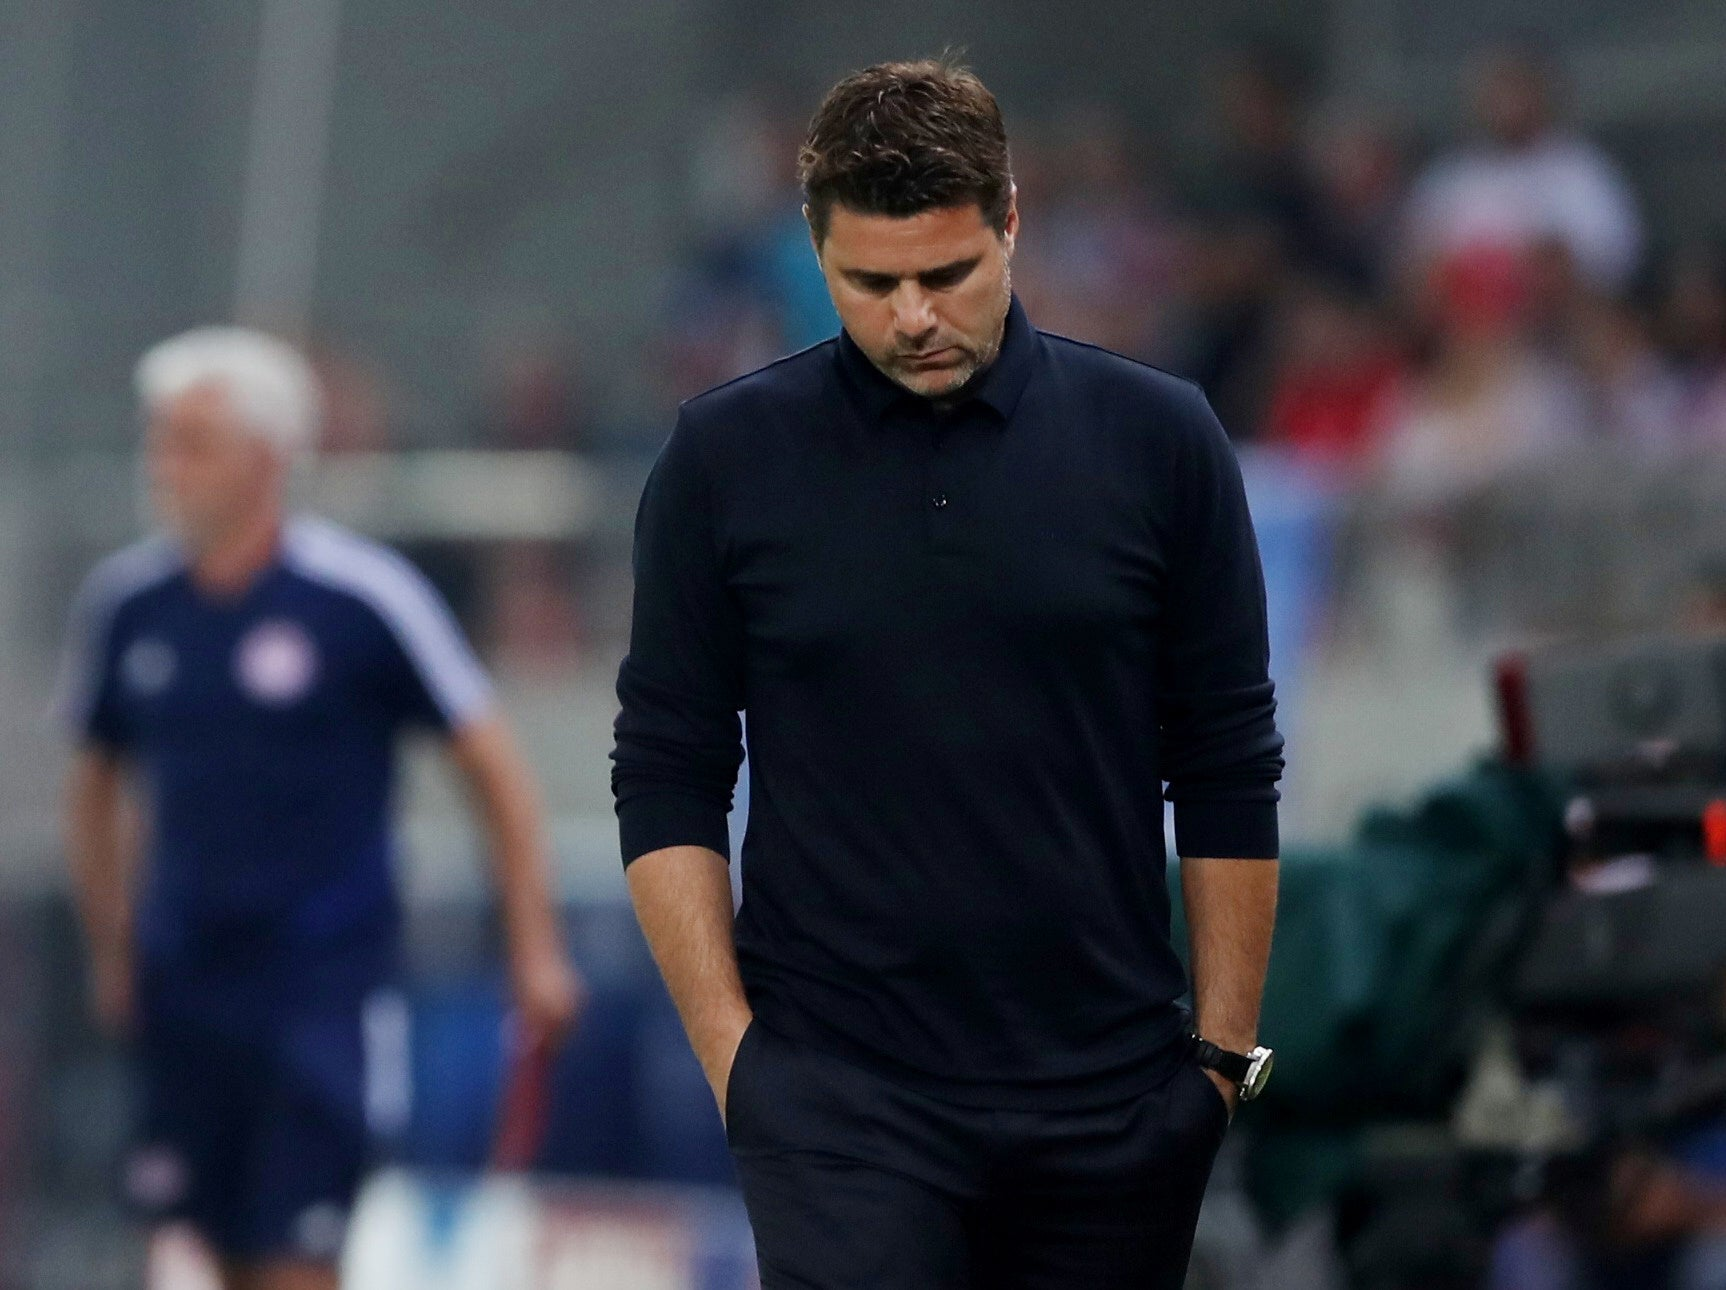 Mauricio Pochettino turns on his players after Tottenham draw with Olympiacos in Champions League